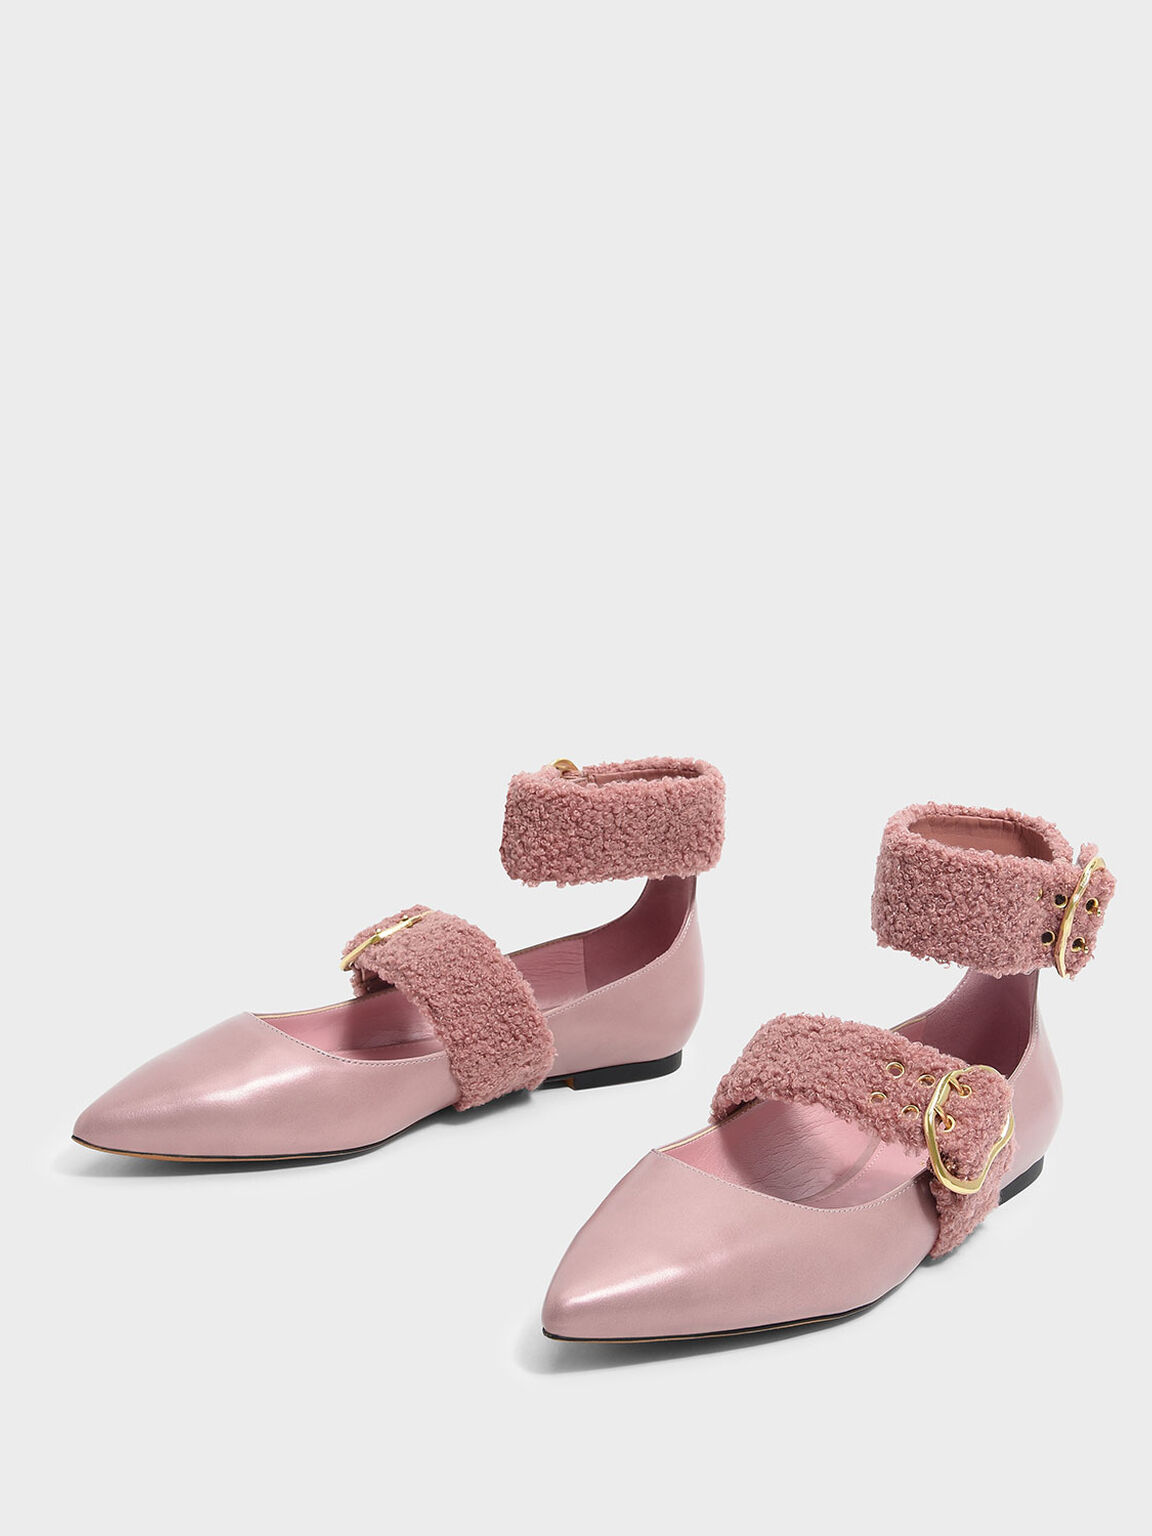 Ankle Strap Mary Jane Flats, Rose Gold, hi-res